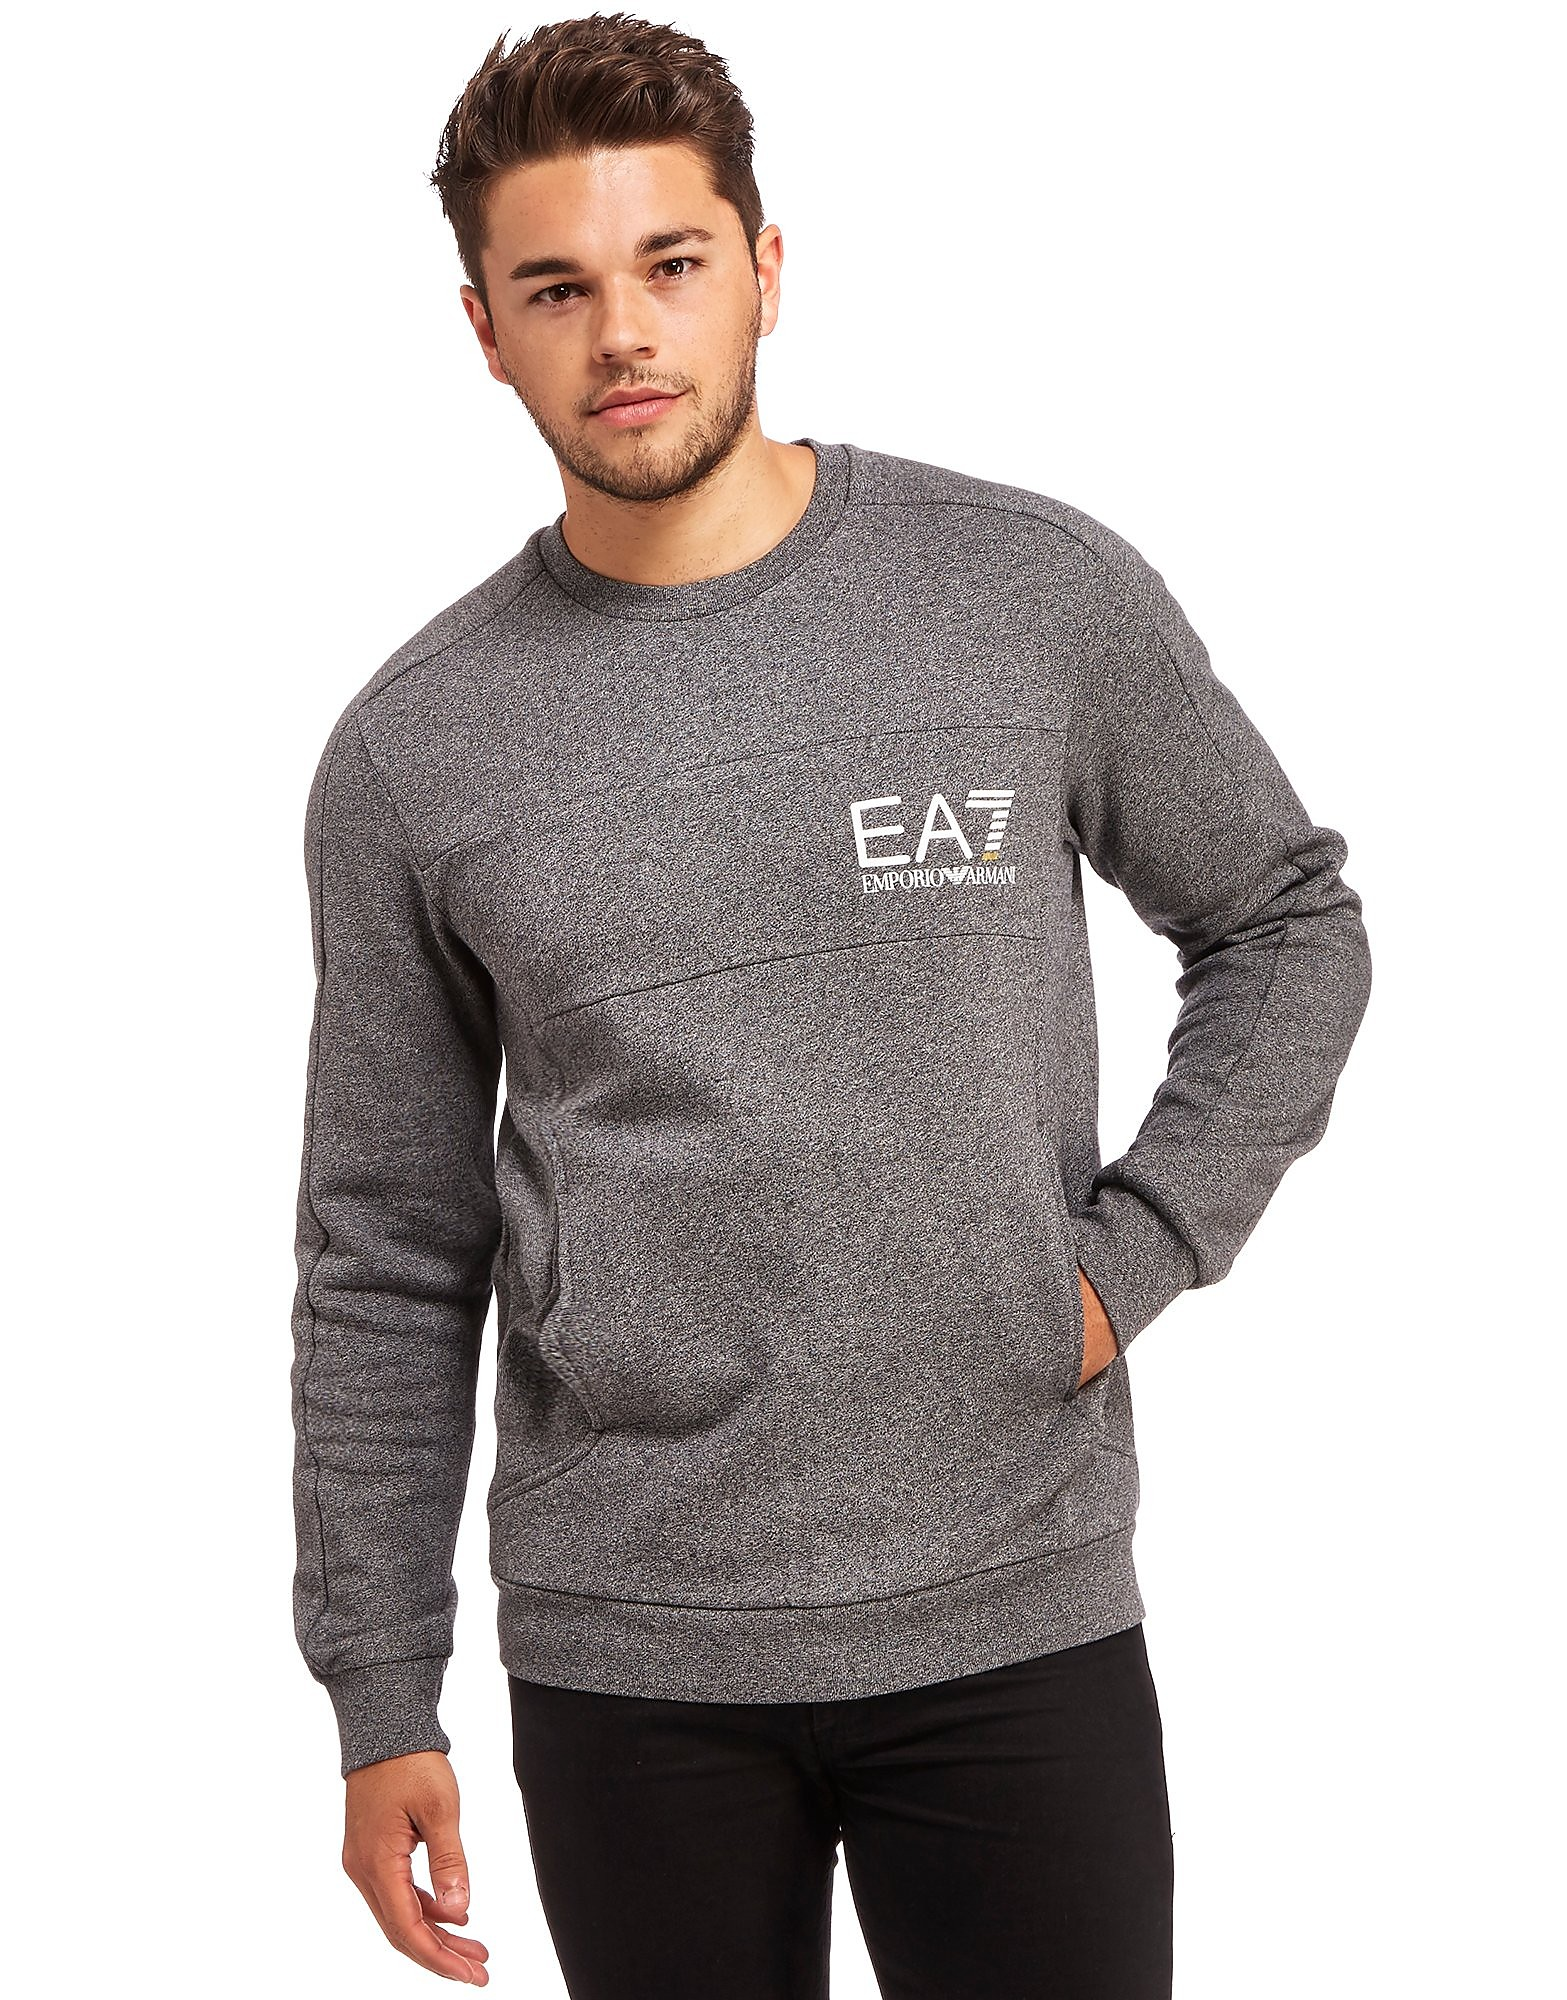 Emporio Armani EA7 Sudadera Enhanced Crew